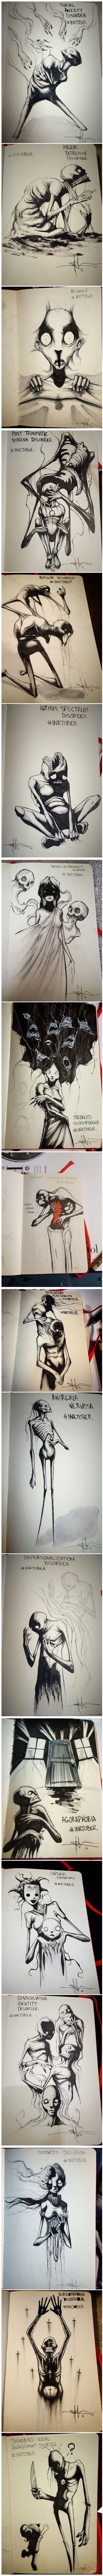 Artist With Autism Illustrates >> Artist Shawn Coss Illustrates Mental Illness And Disorders Art